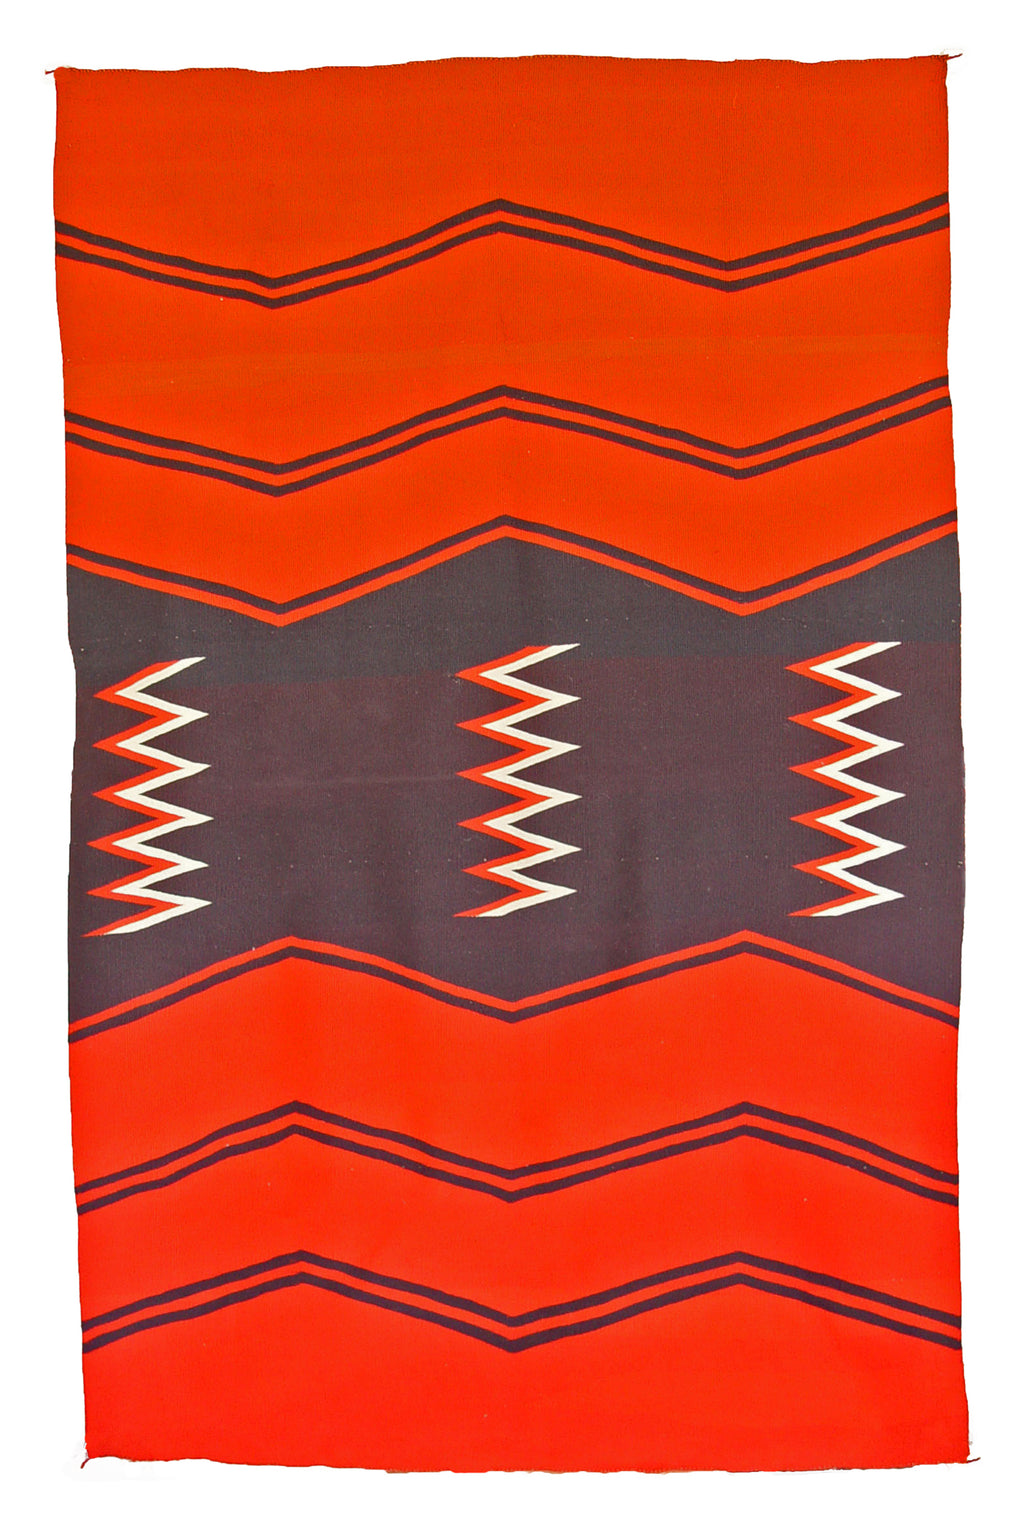 "Neo-Classic Serape : Historic Navajo Weaving : PC 37 : 52"" x 83"" - Getzwiller's Nizhoni Ranch Gallery"